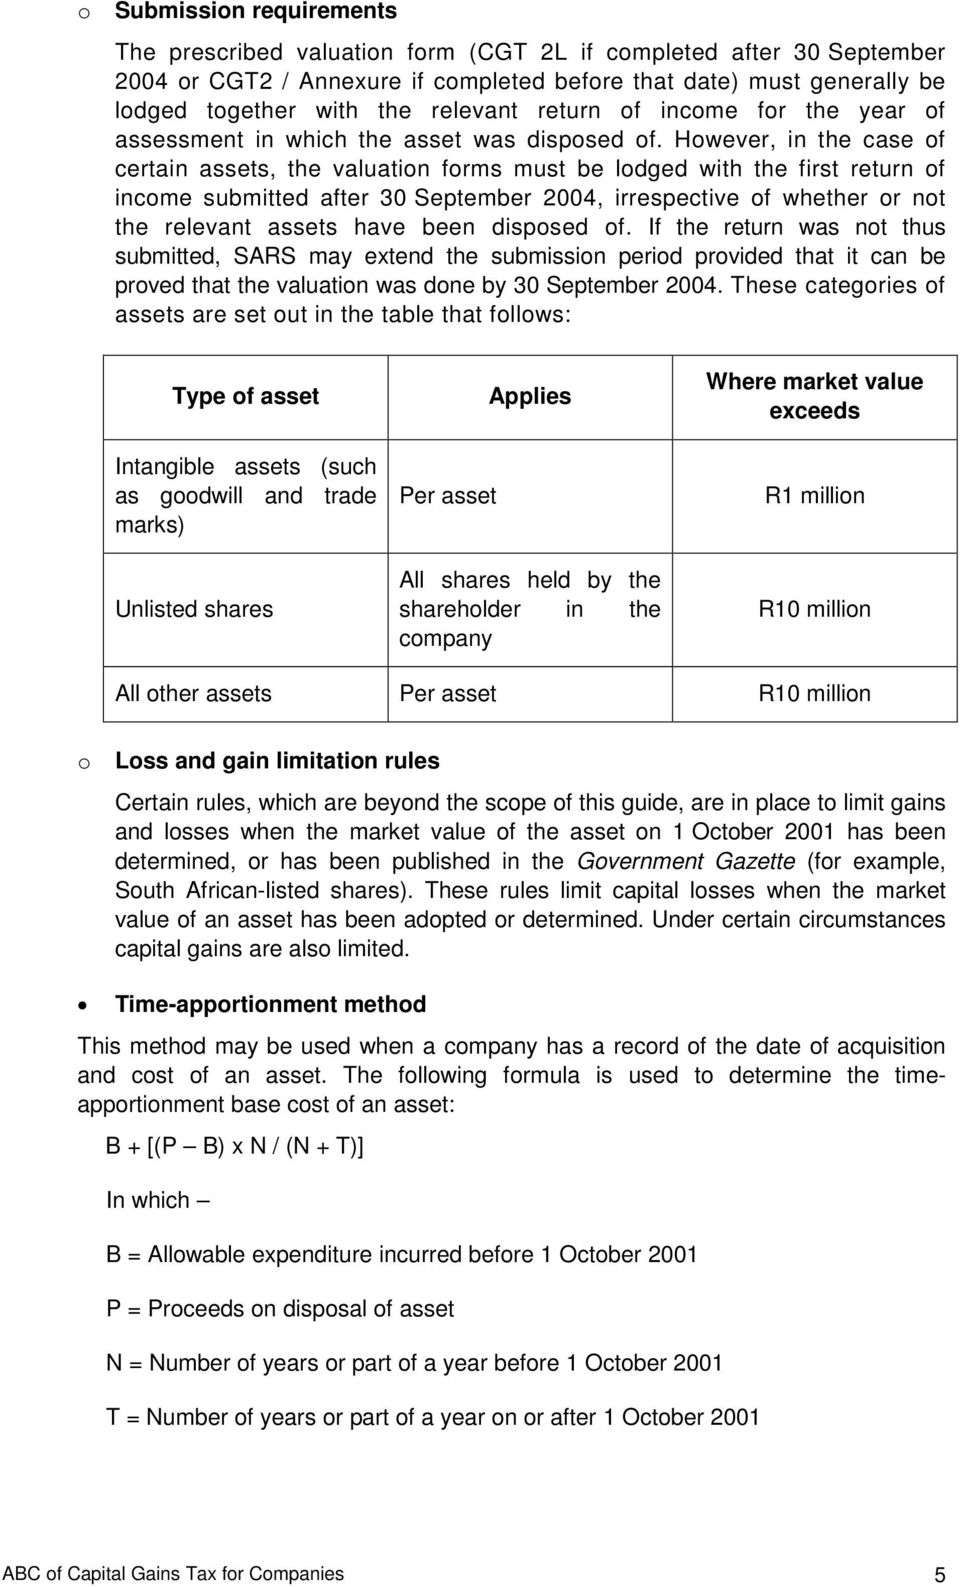 However, in the case of certain assets, the valuation forms must be lodged with the first return of income submitted after 30 September 2004, irrespective of whether or not the relevant assets have